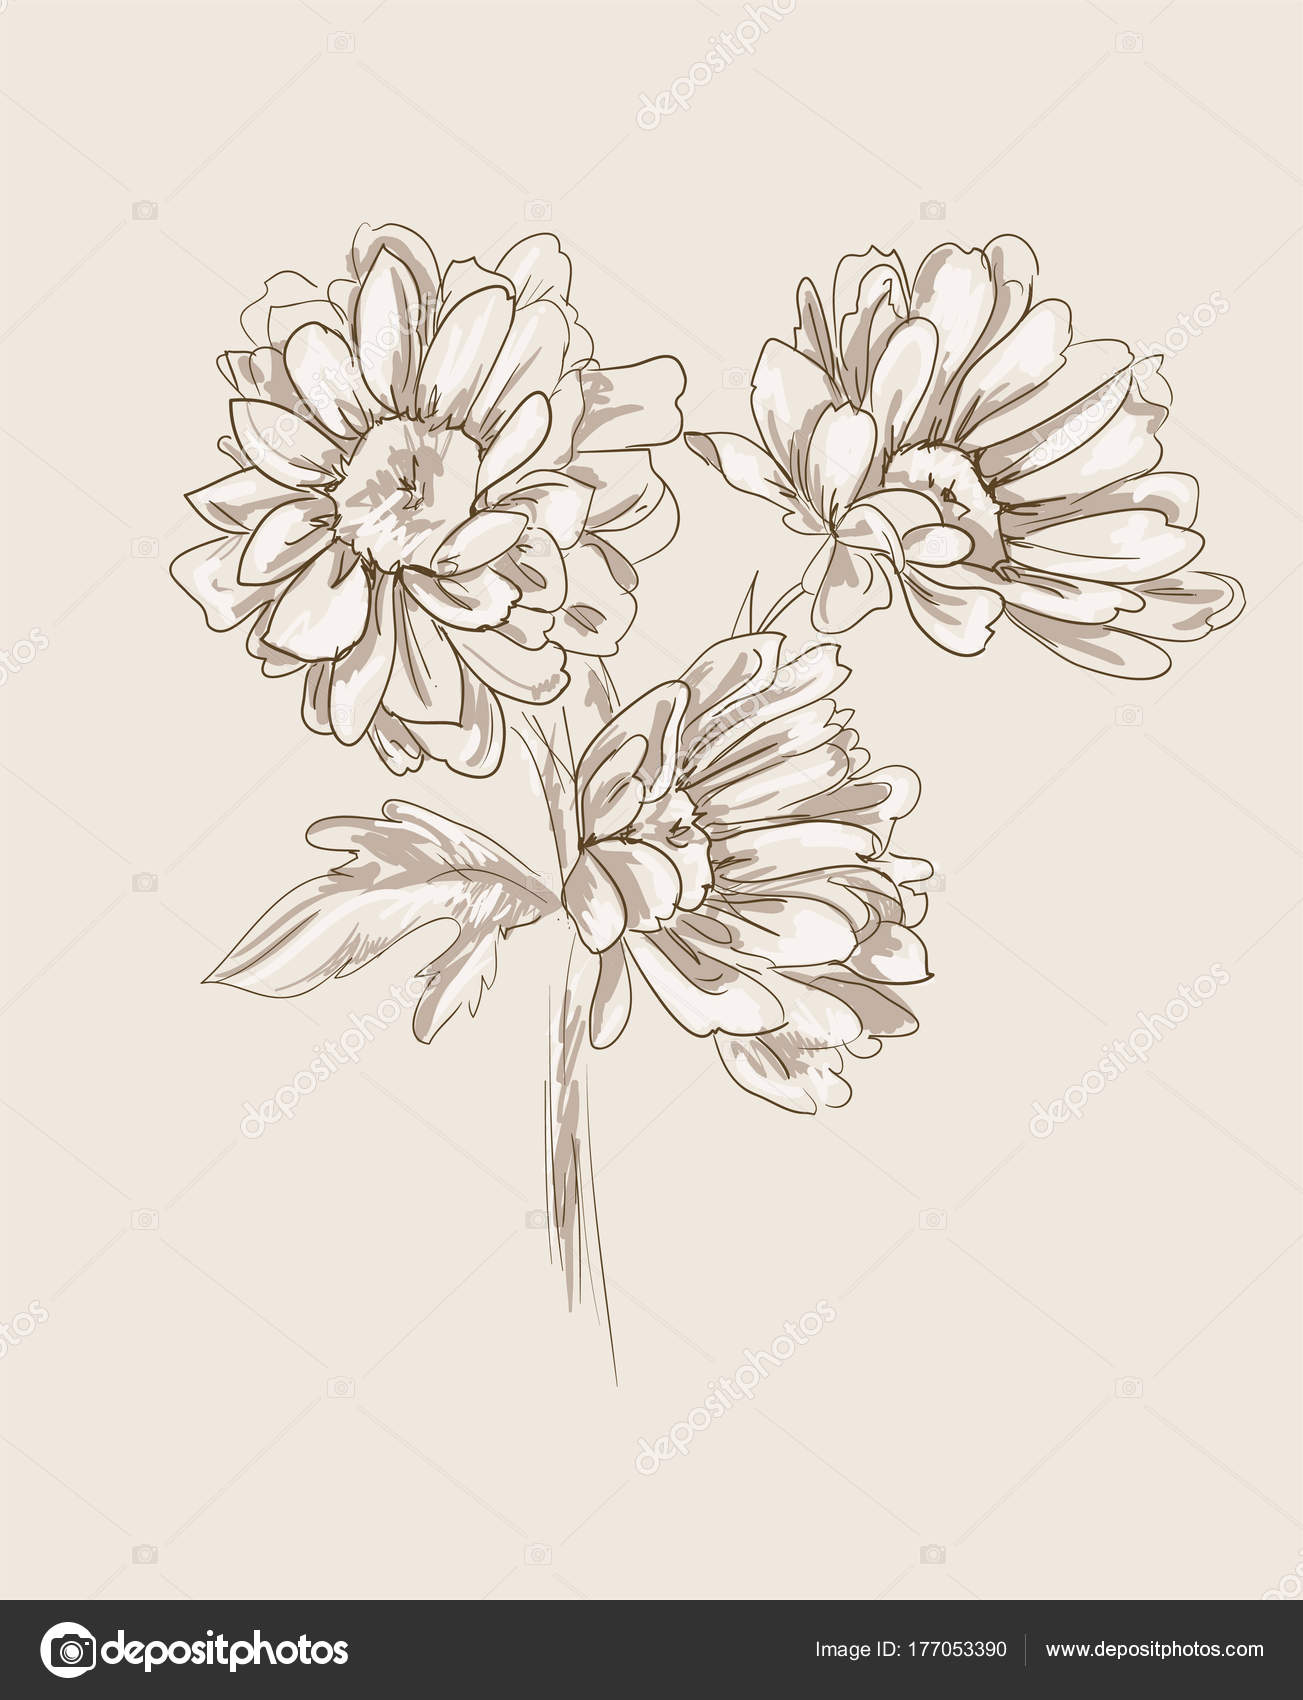 Hand drawn sketch beautiful flowers vector illustration stock hand drawn sketch beautiful flowers vector illustration stock vector izmirmasajfo